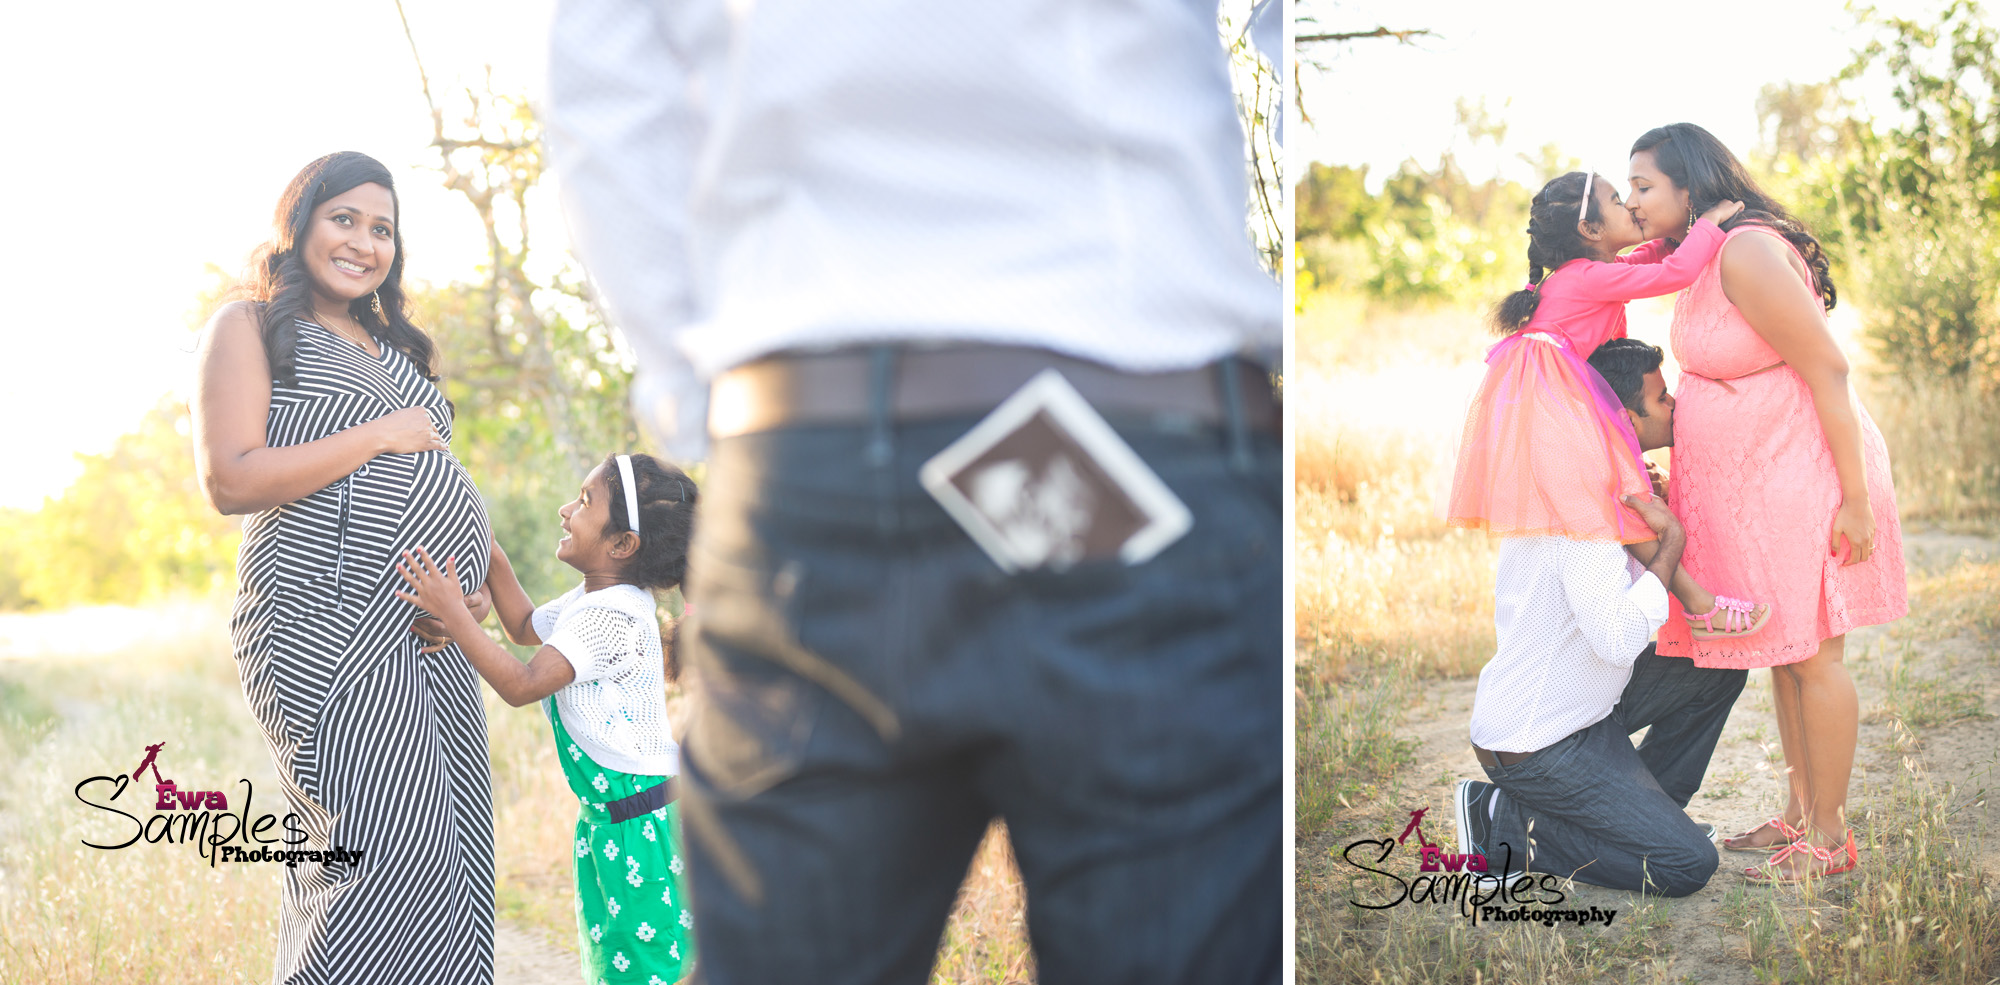 maternity_peach_dress_maternity_photography_family_photography_san_jose_cupertino_ewa_samples